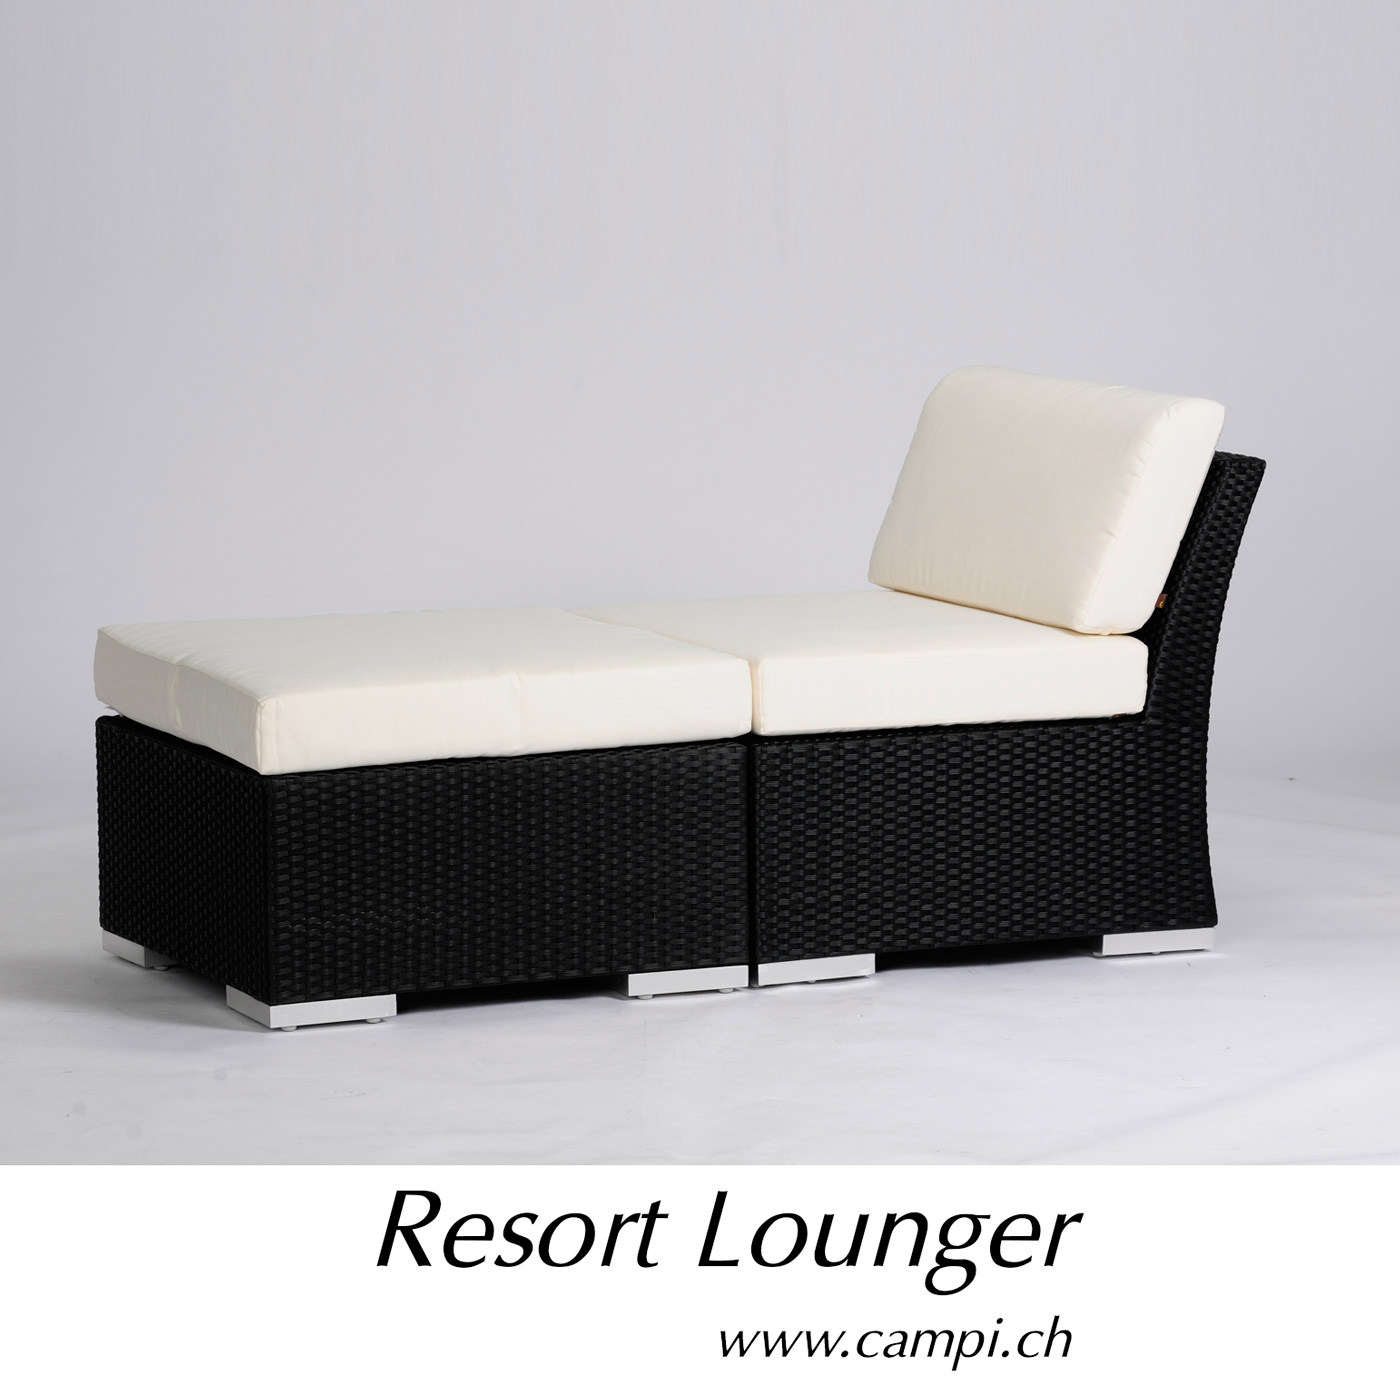 Resort Lounger 150 x 70 x 69 #1